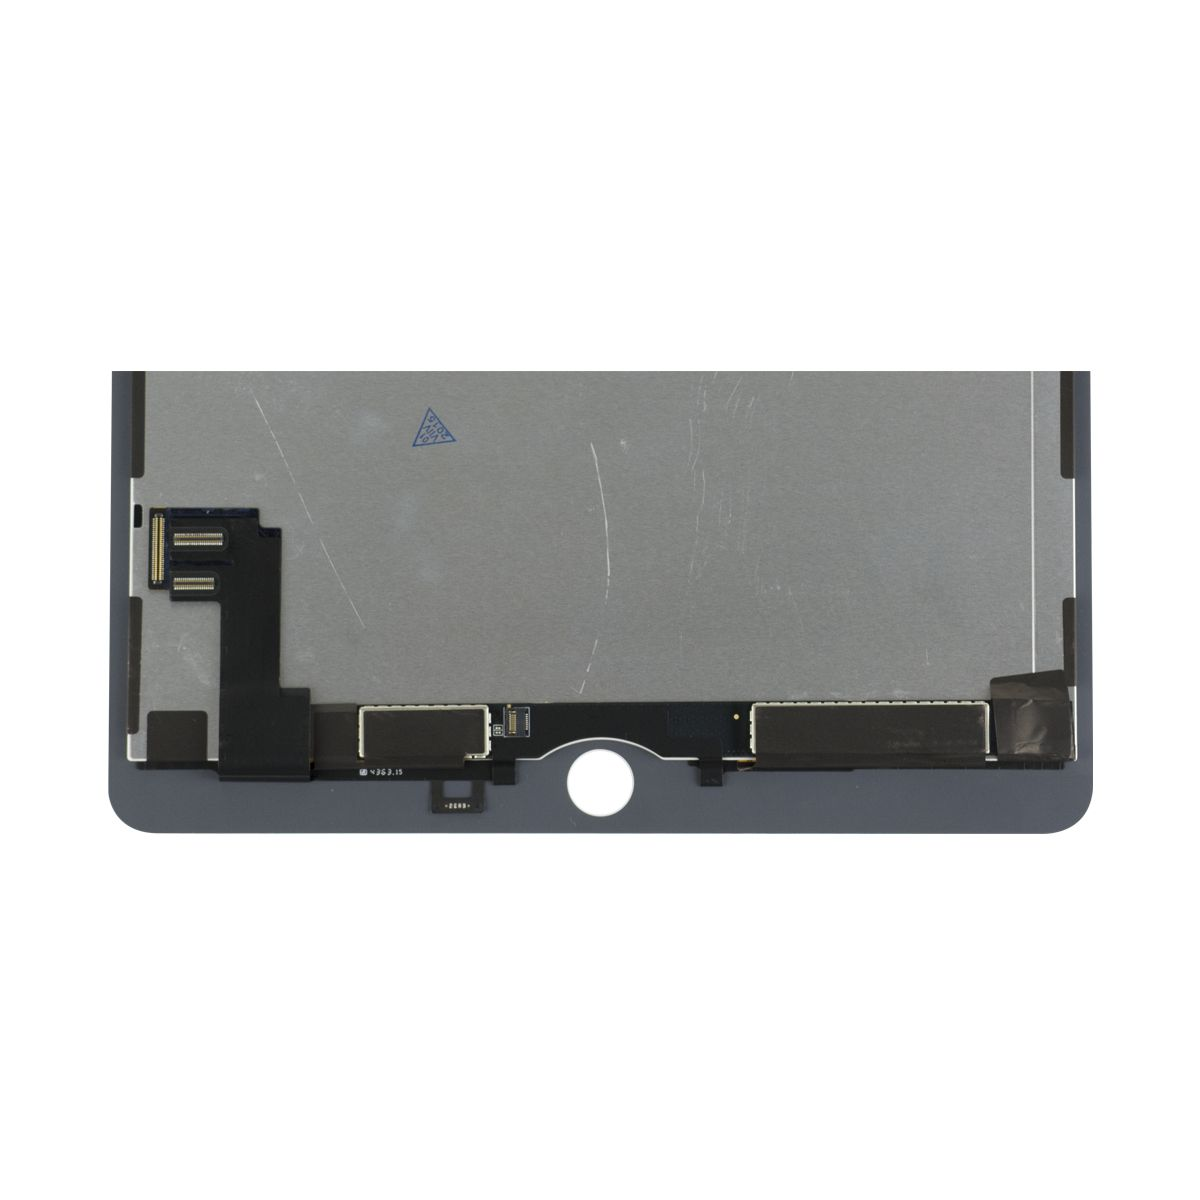 iPad Air 2 LCD   Touch Screen Digitizer Assembly Replacement - White  (Premium) 9716b6680cf12